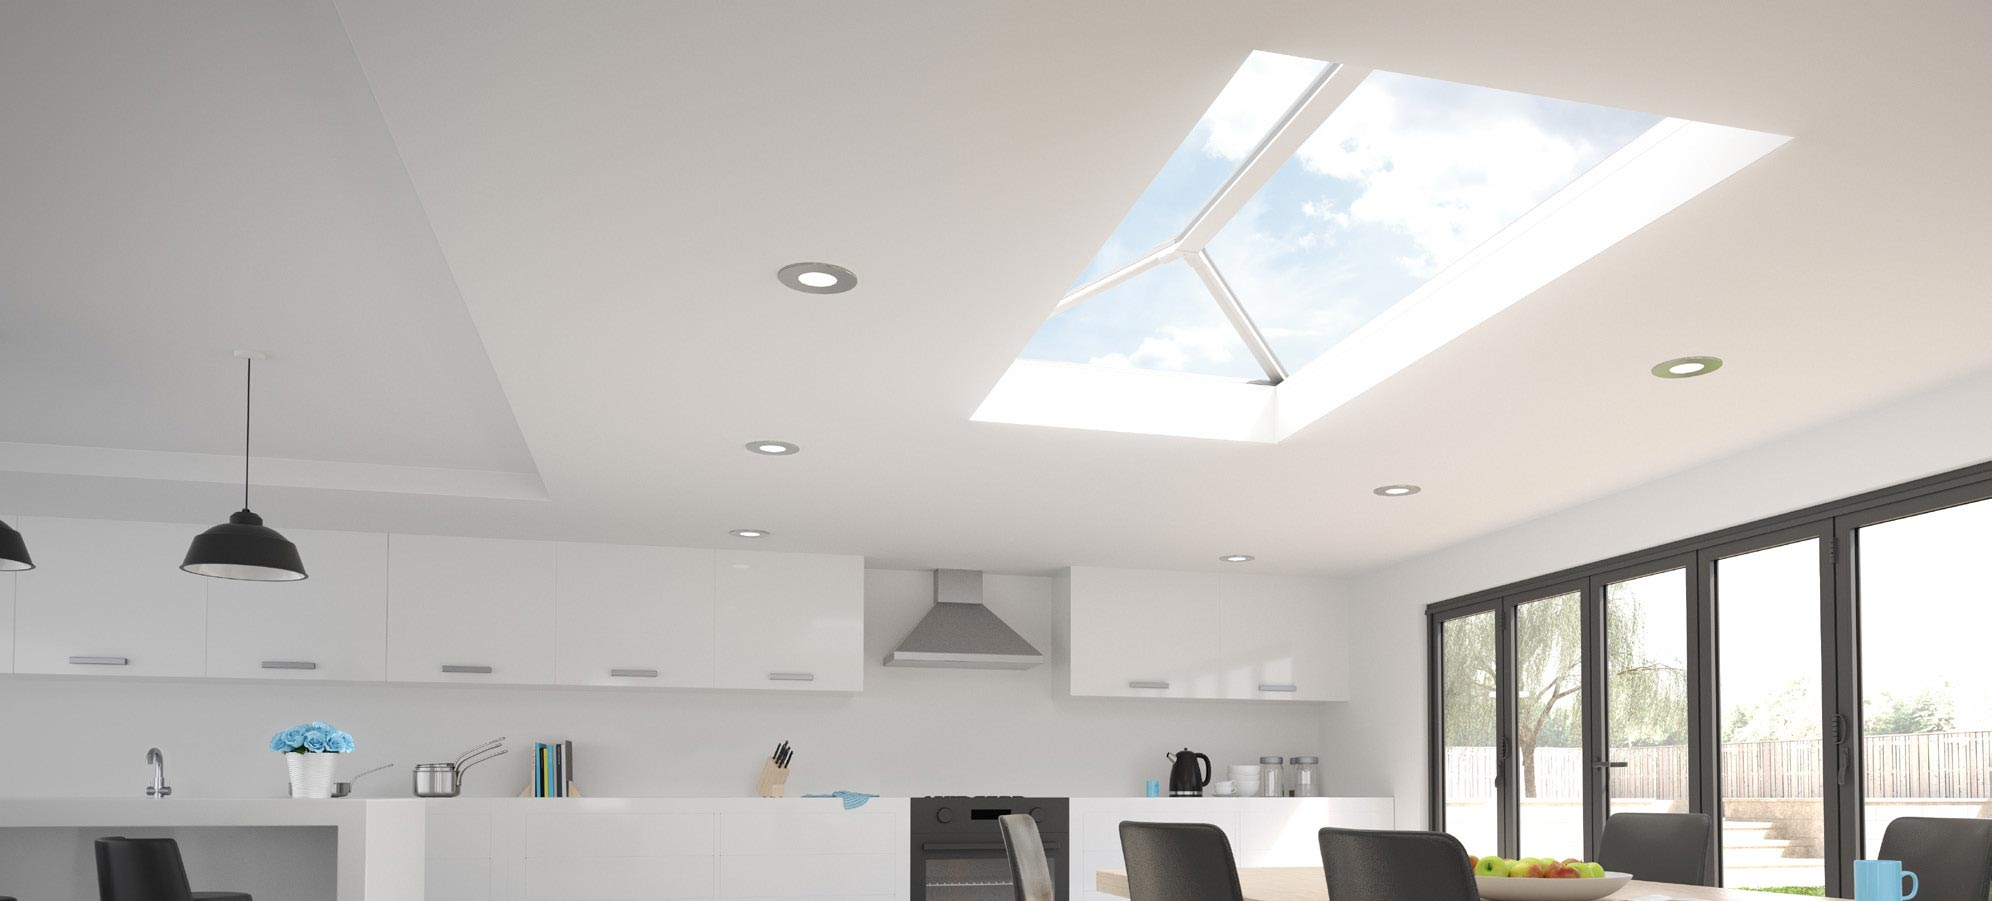 Stratus Thermal Lantern Roof Spectra Conservatory Roofs